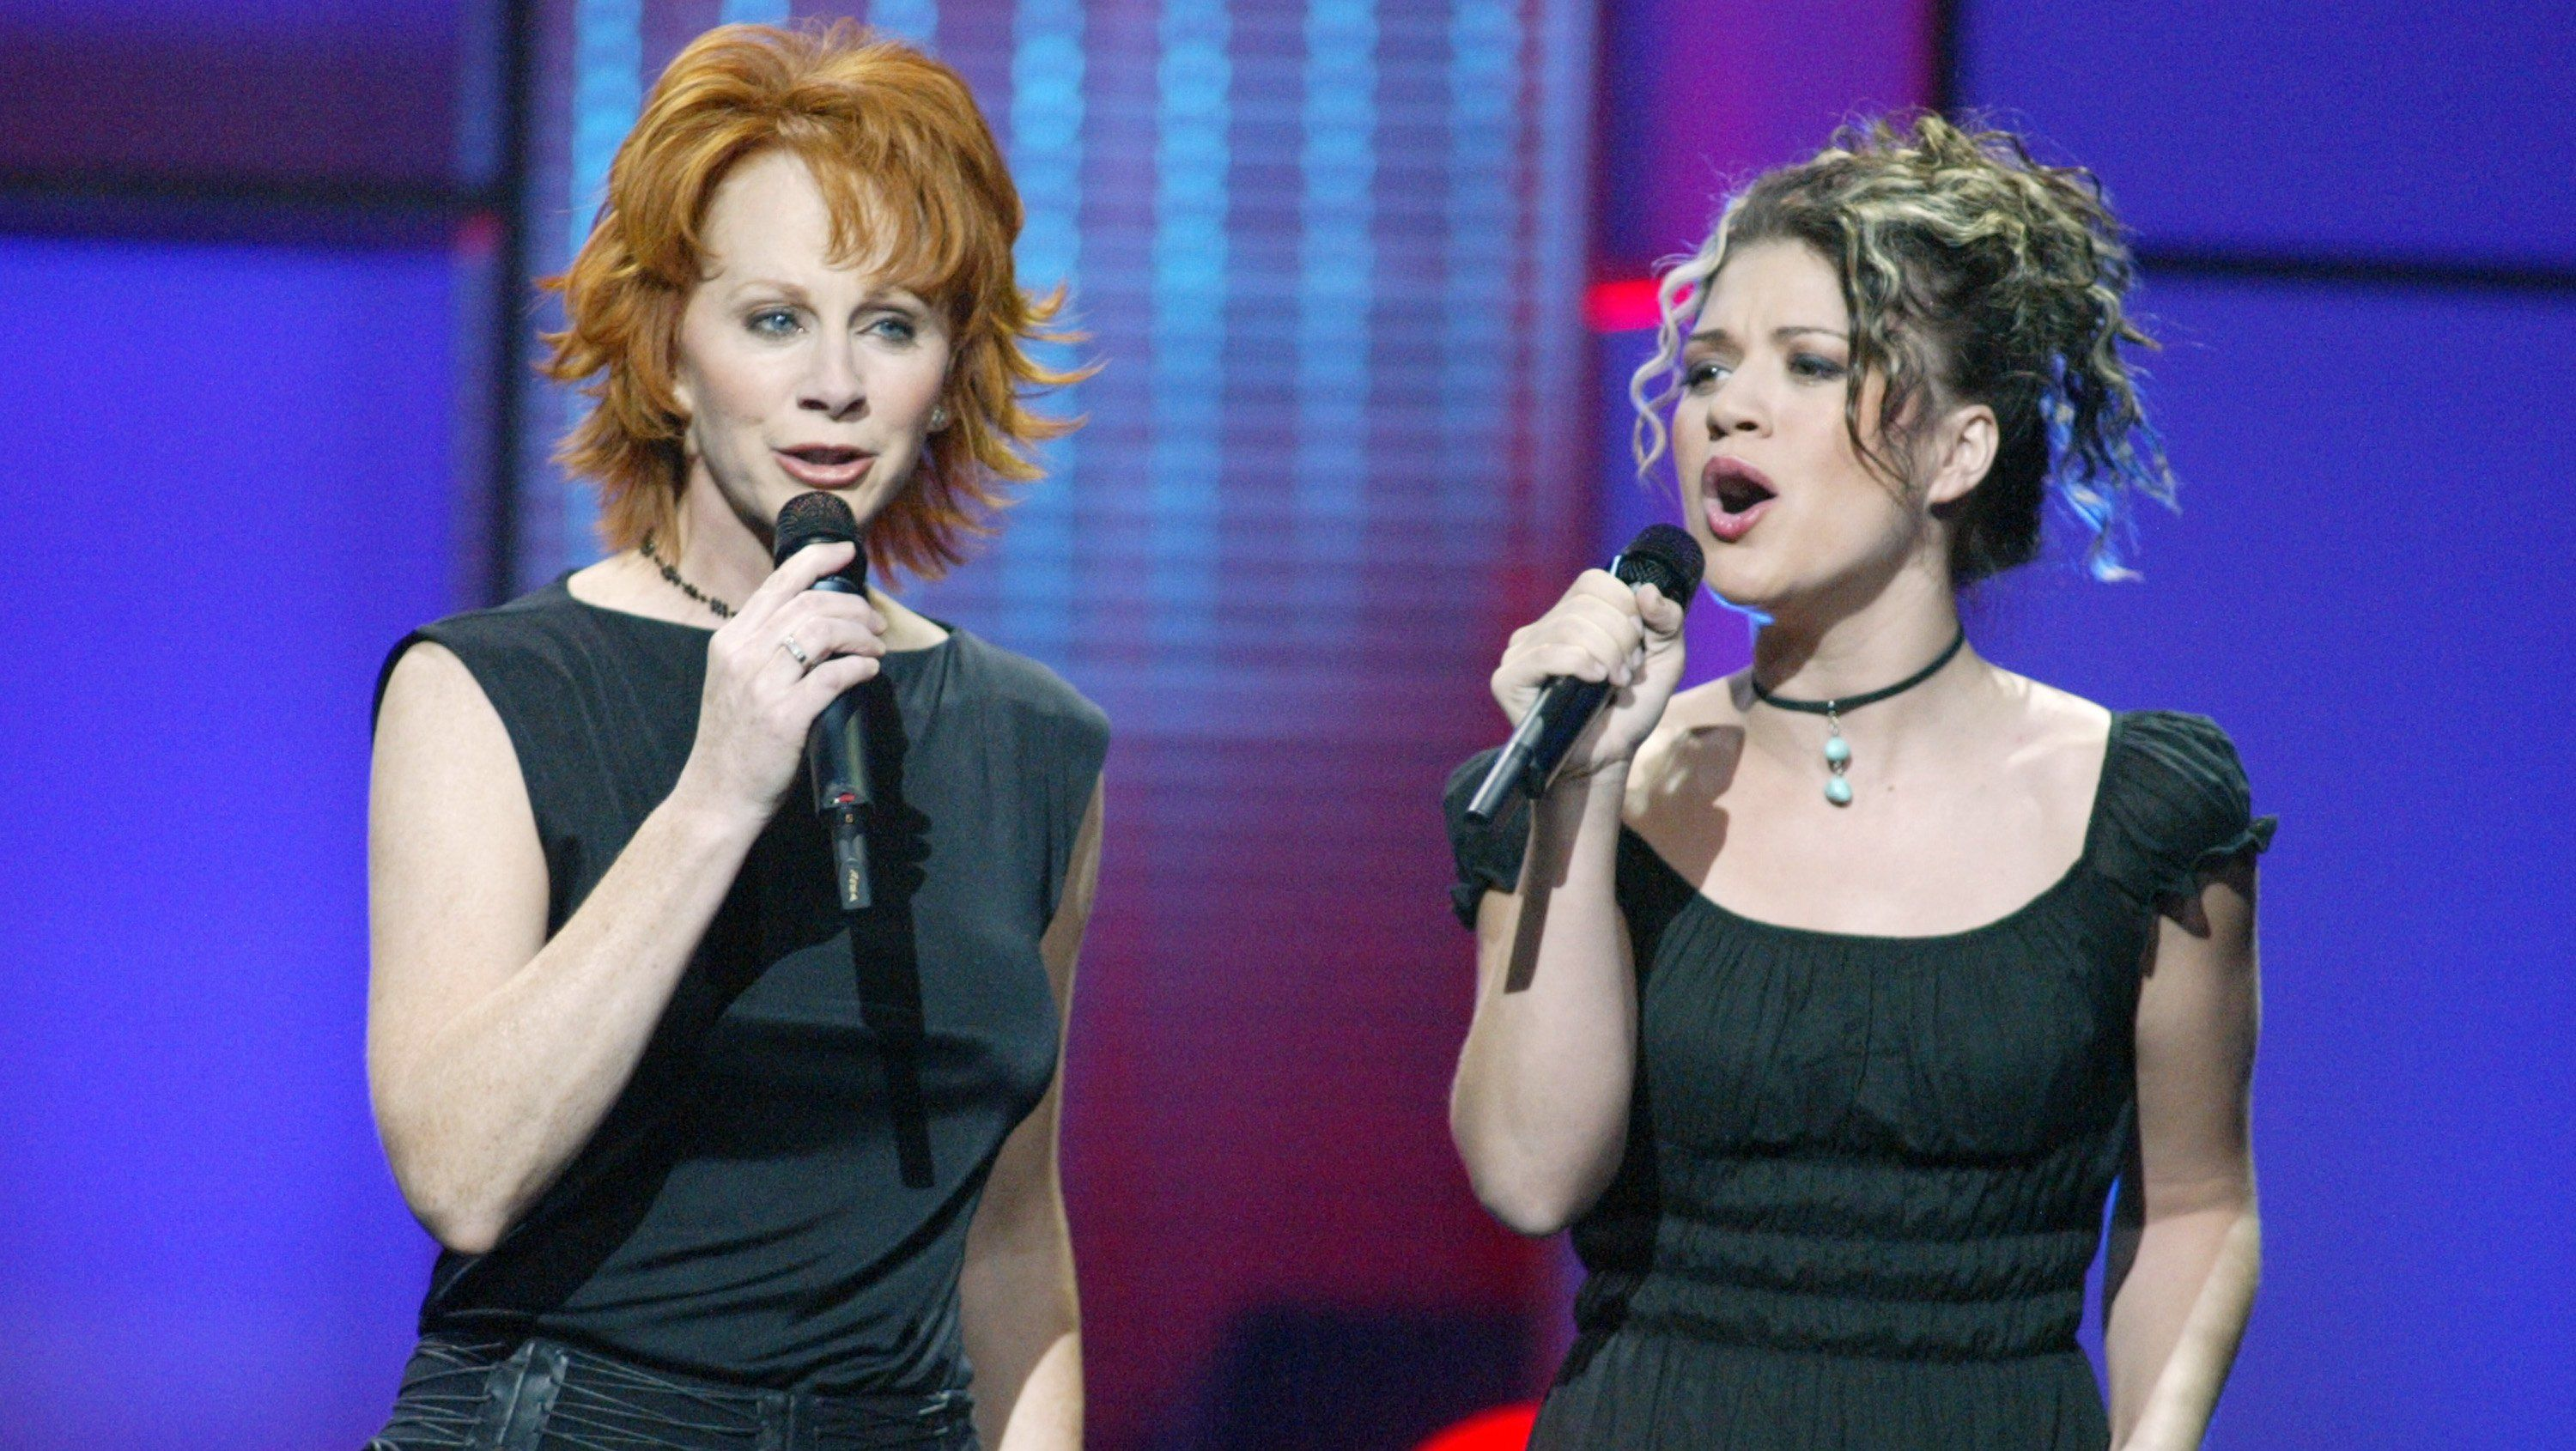 Reba McEntire and Kelly Clarkson Met on 'American Idol' Long Before They Were Related